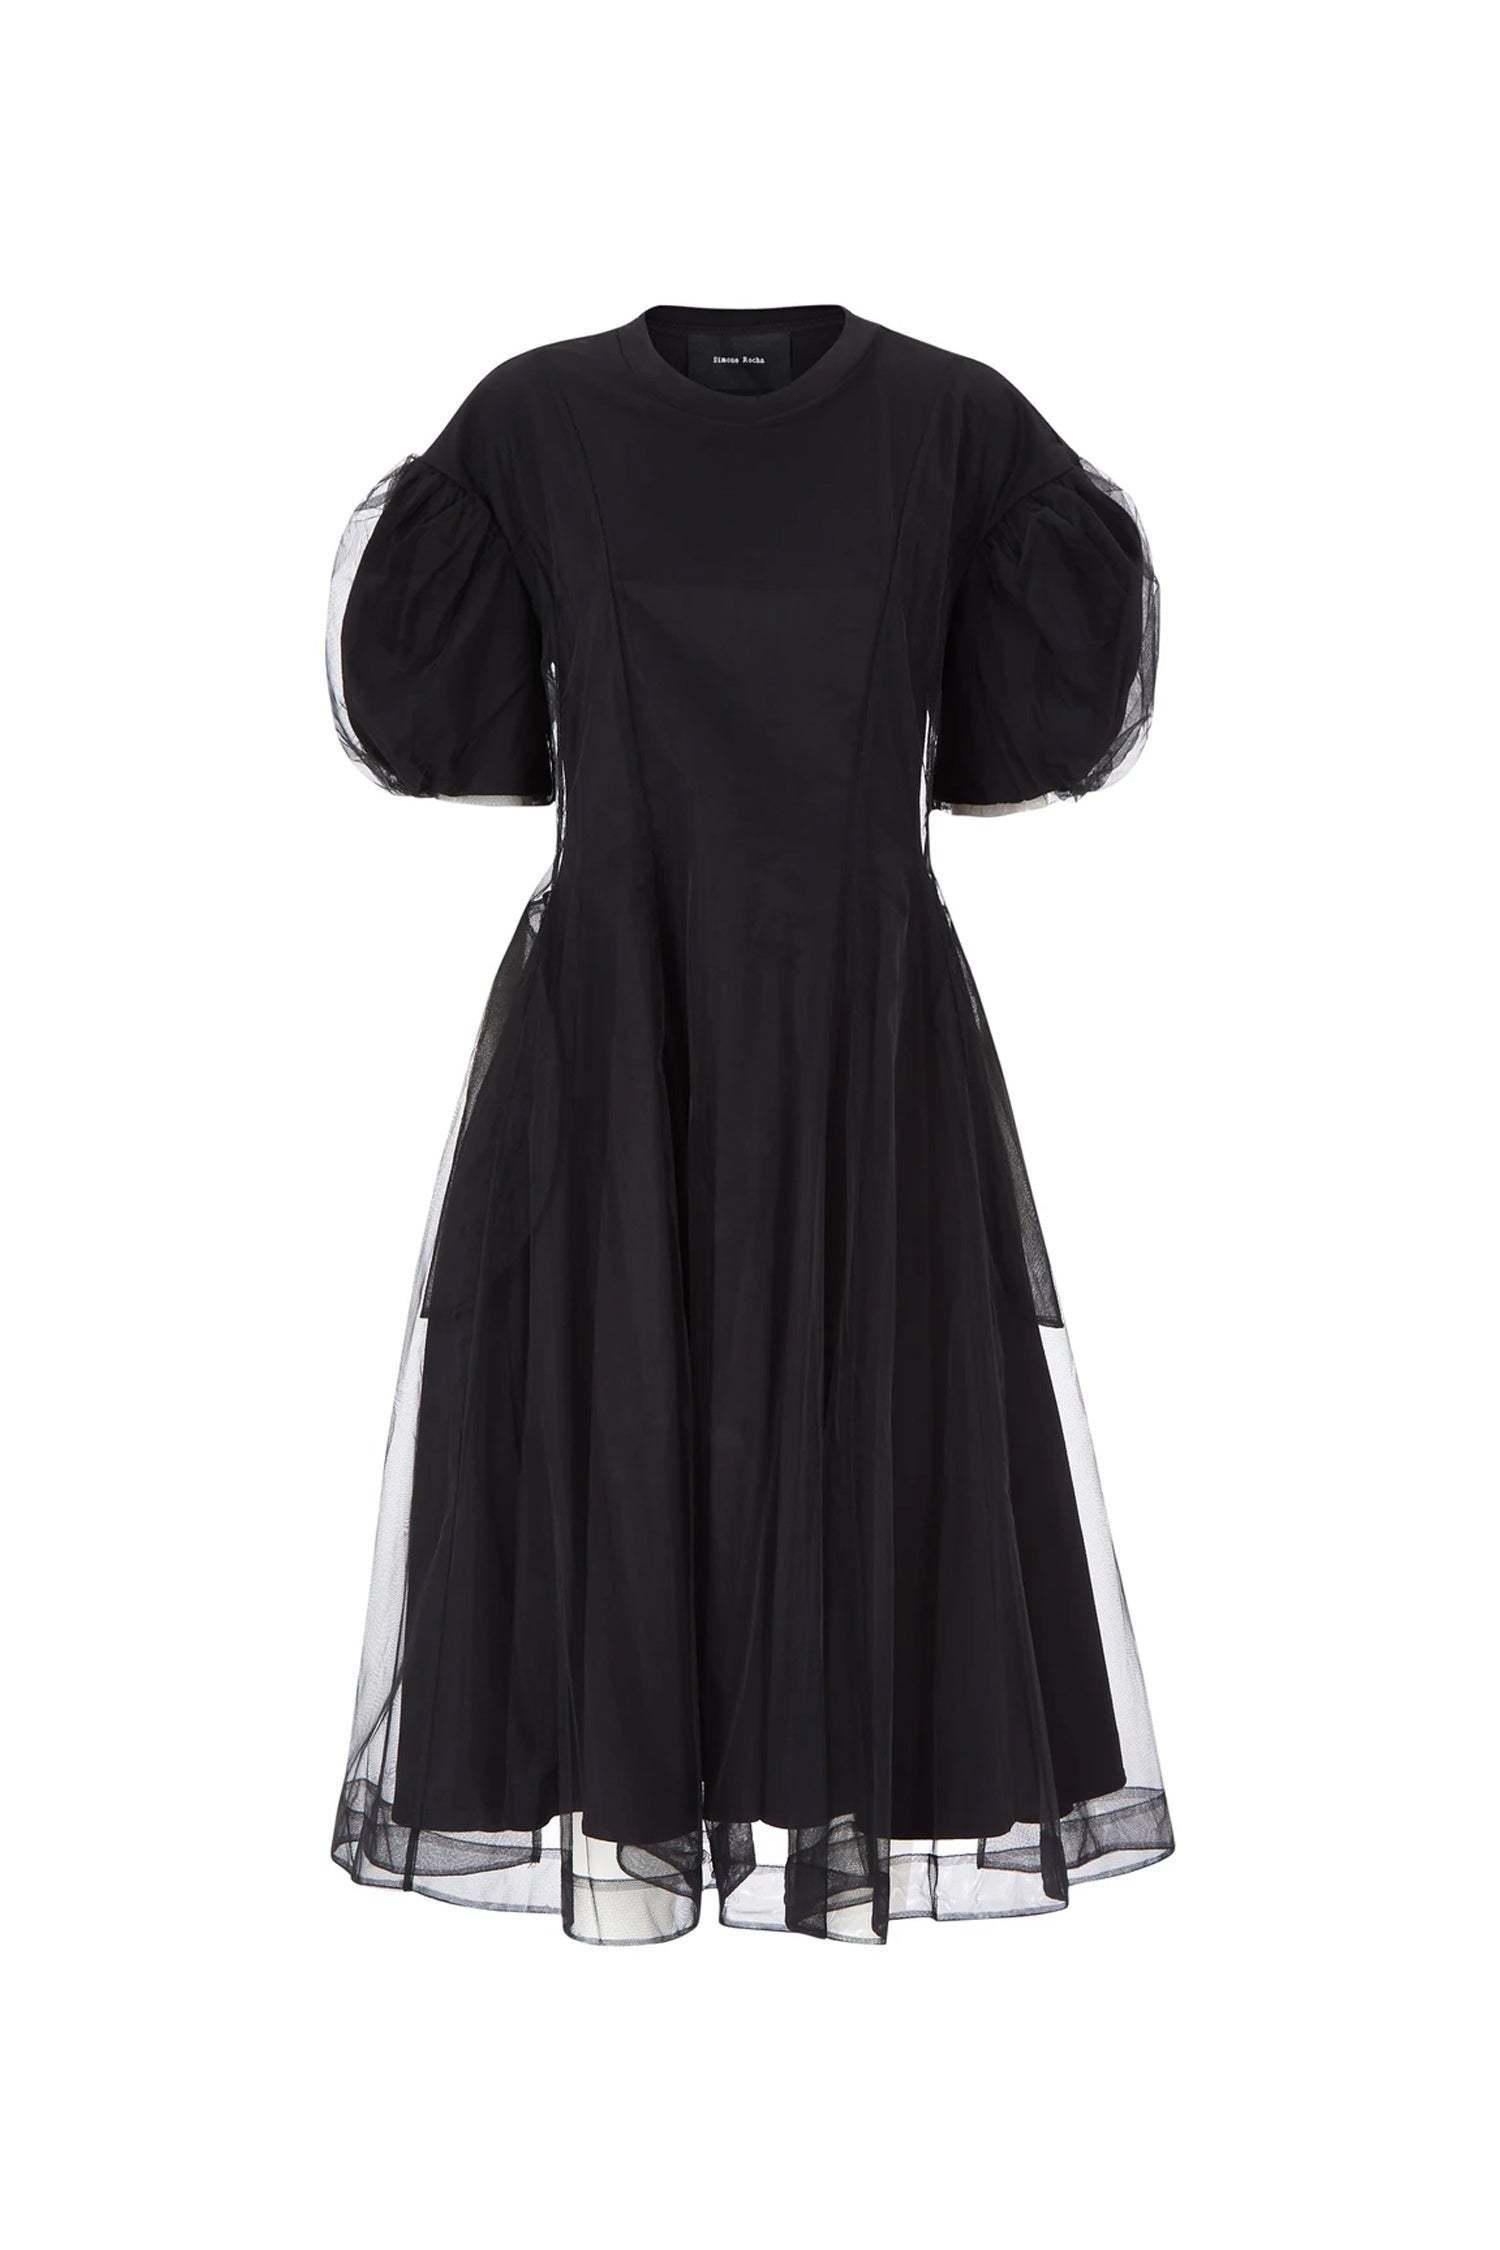 TULLE OVERLAY DRESS (S21)